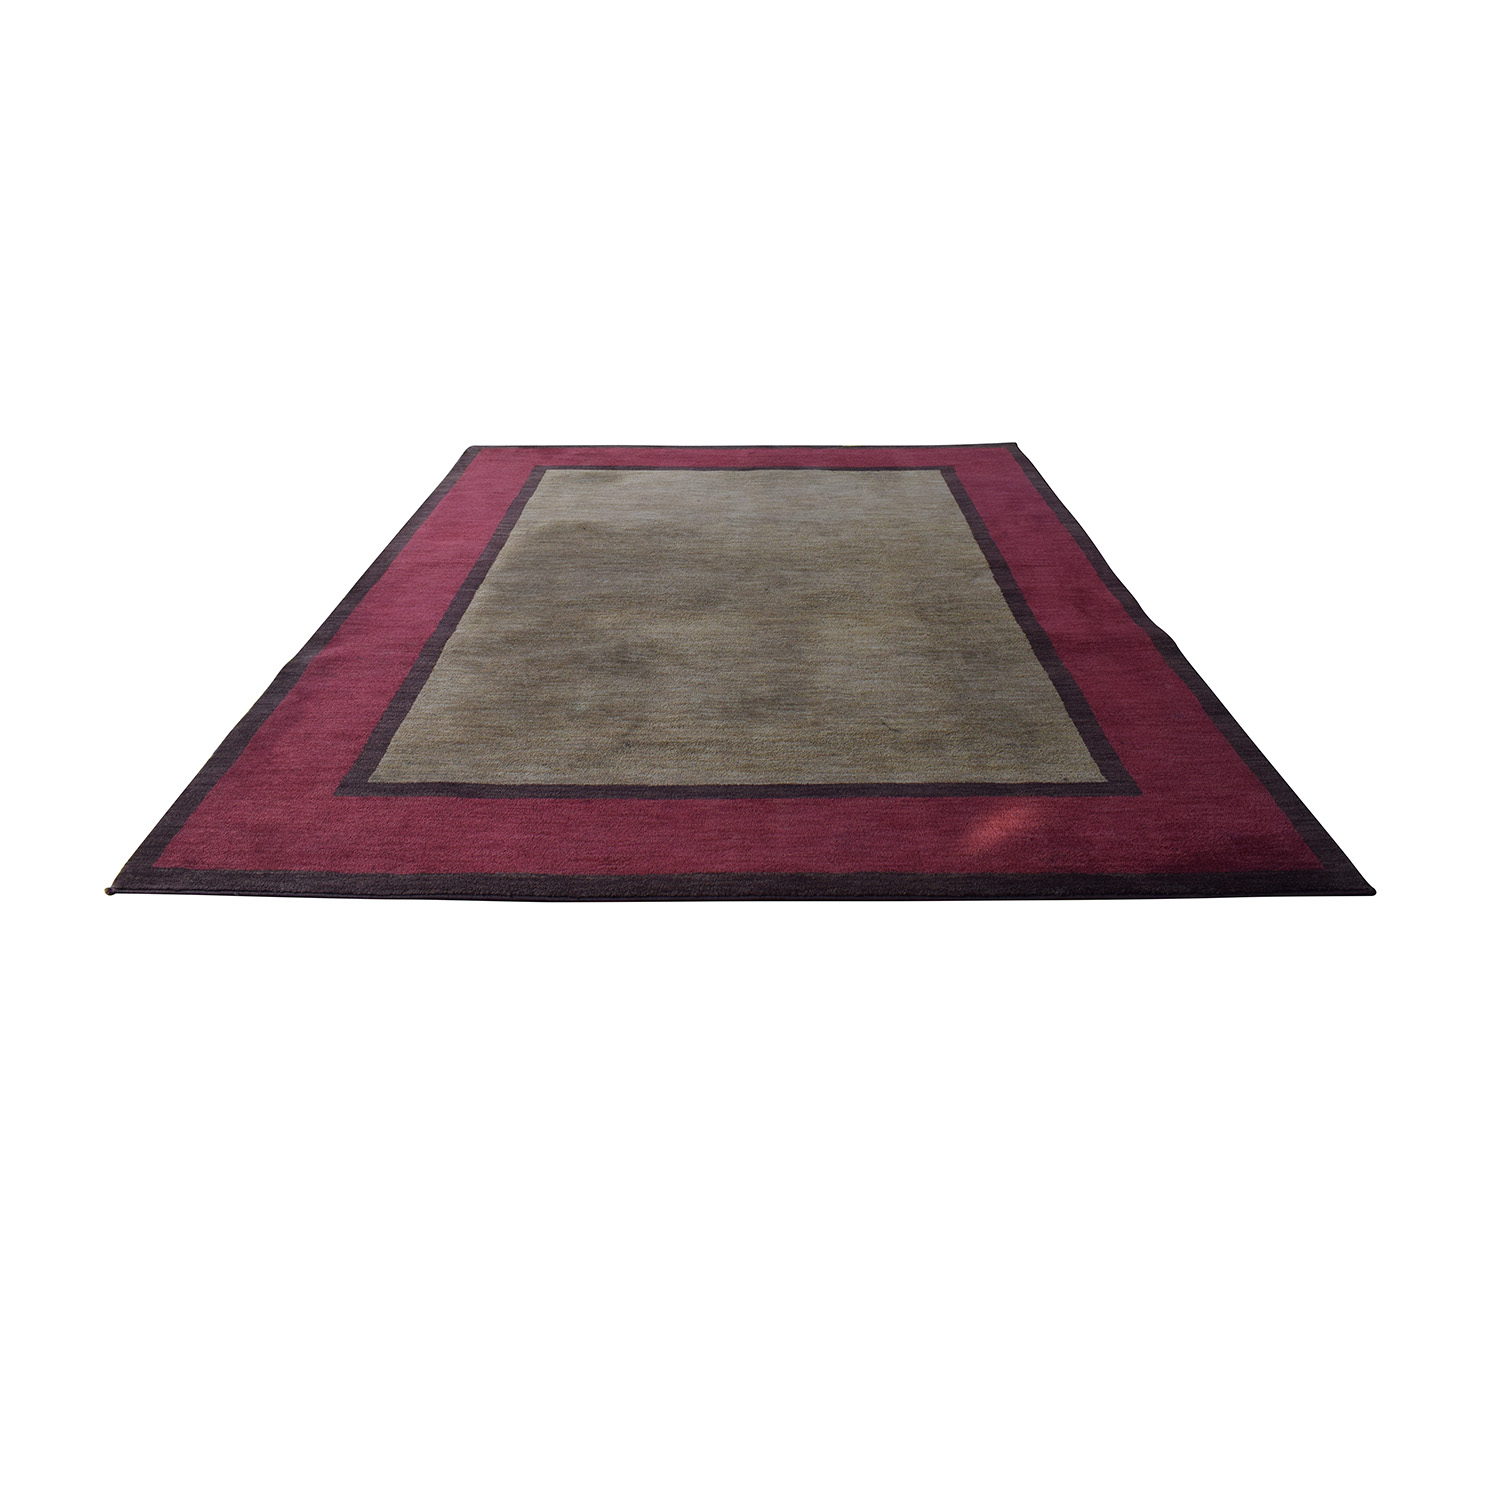 Red Tan and Black Rug coupon